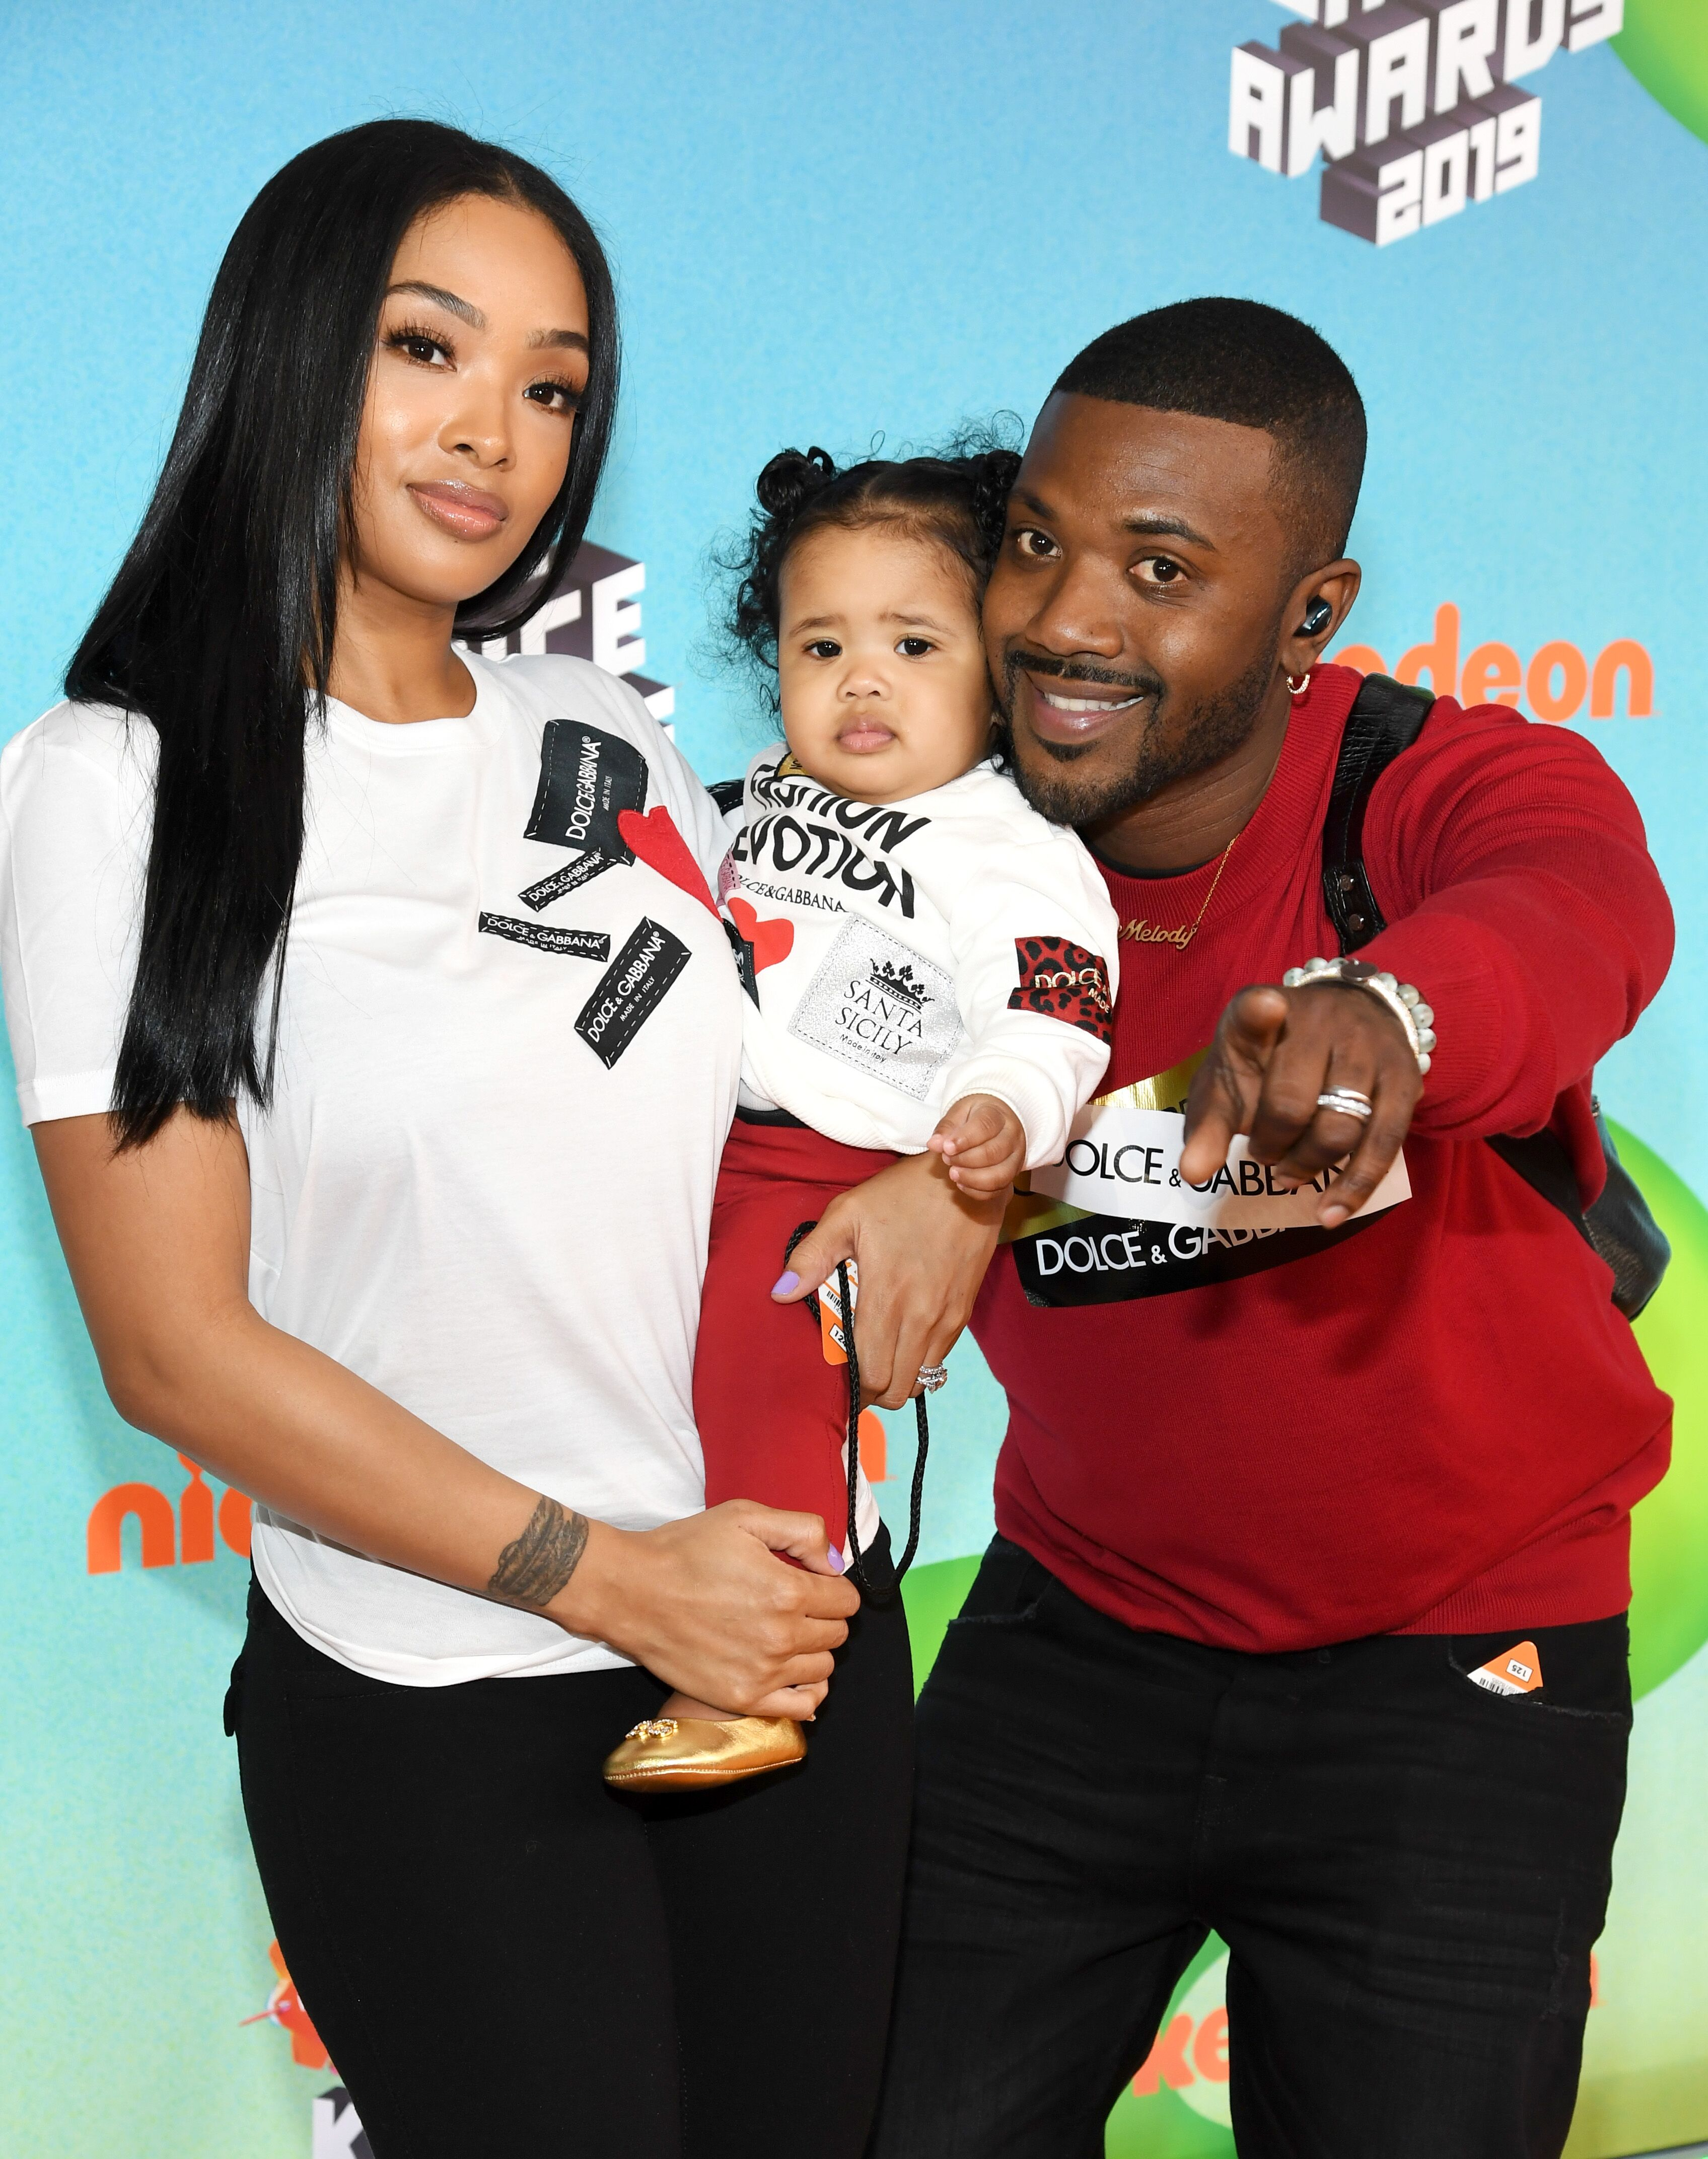 Princess Love, Melody Love and Ray J at the Nickelodeon Awards 2019| Photo: Getty Images